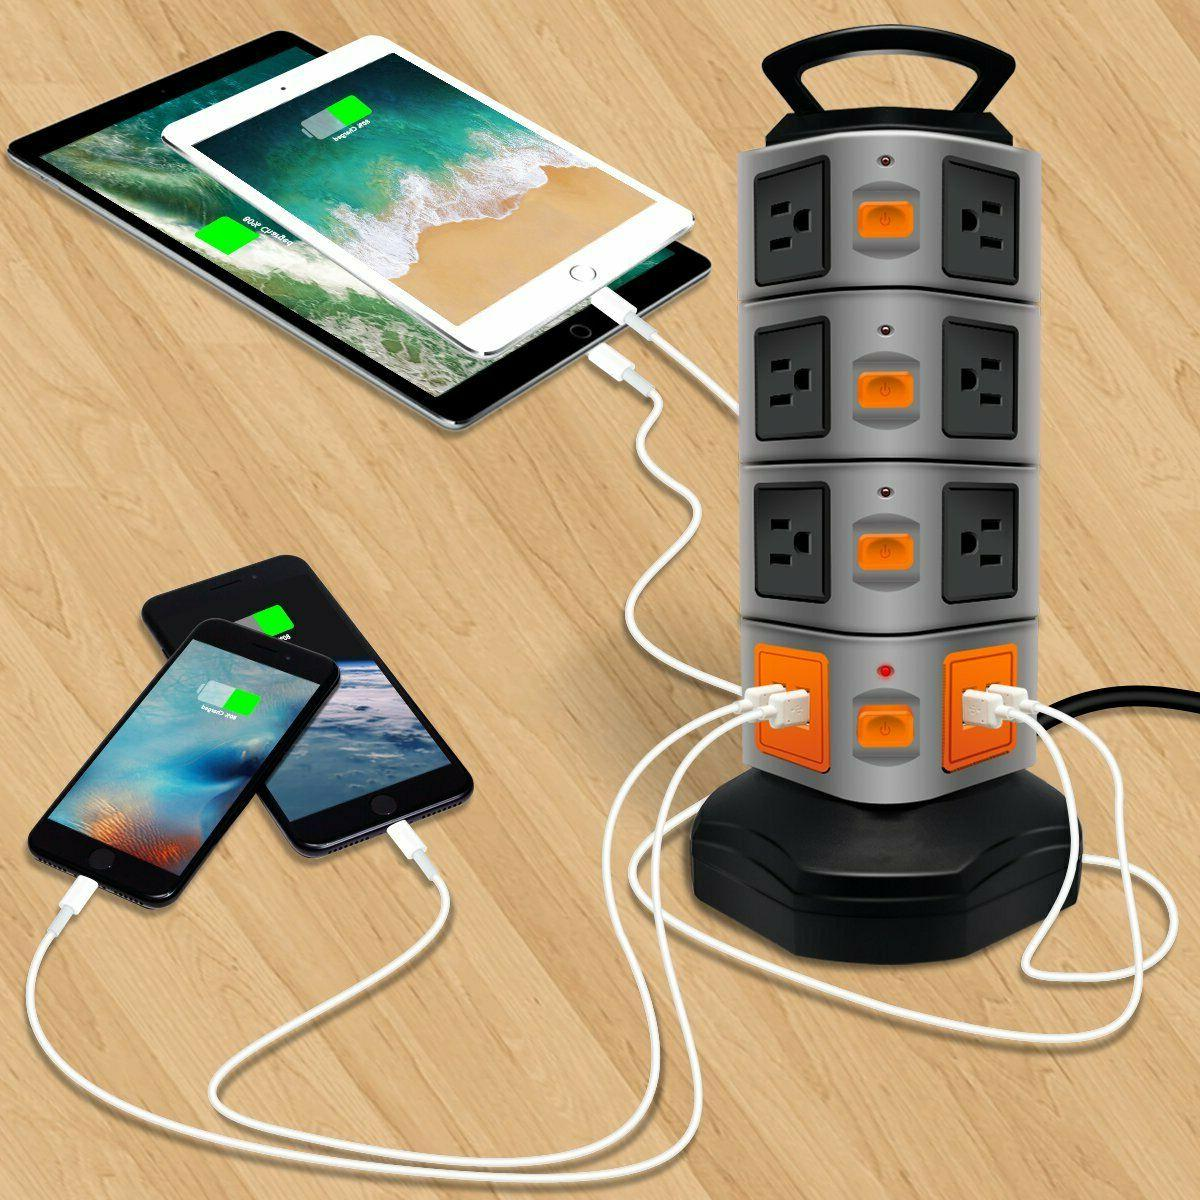 PowerStrip Surge Protector Electric Charging Station Outlet Plugs